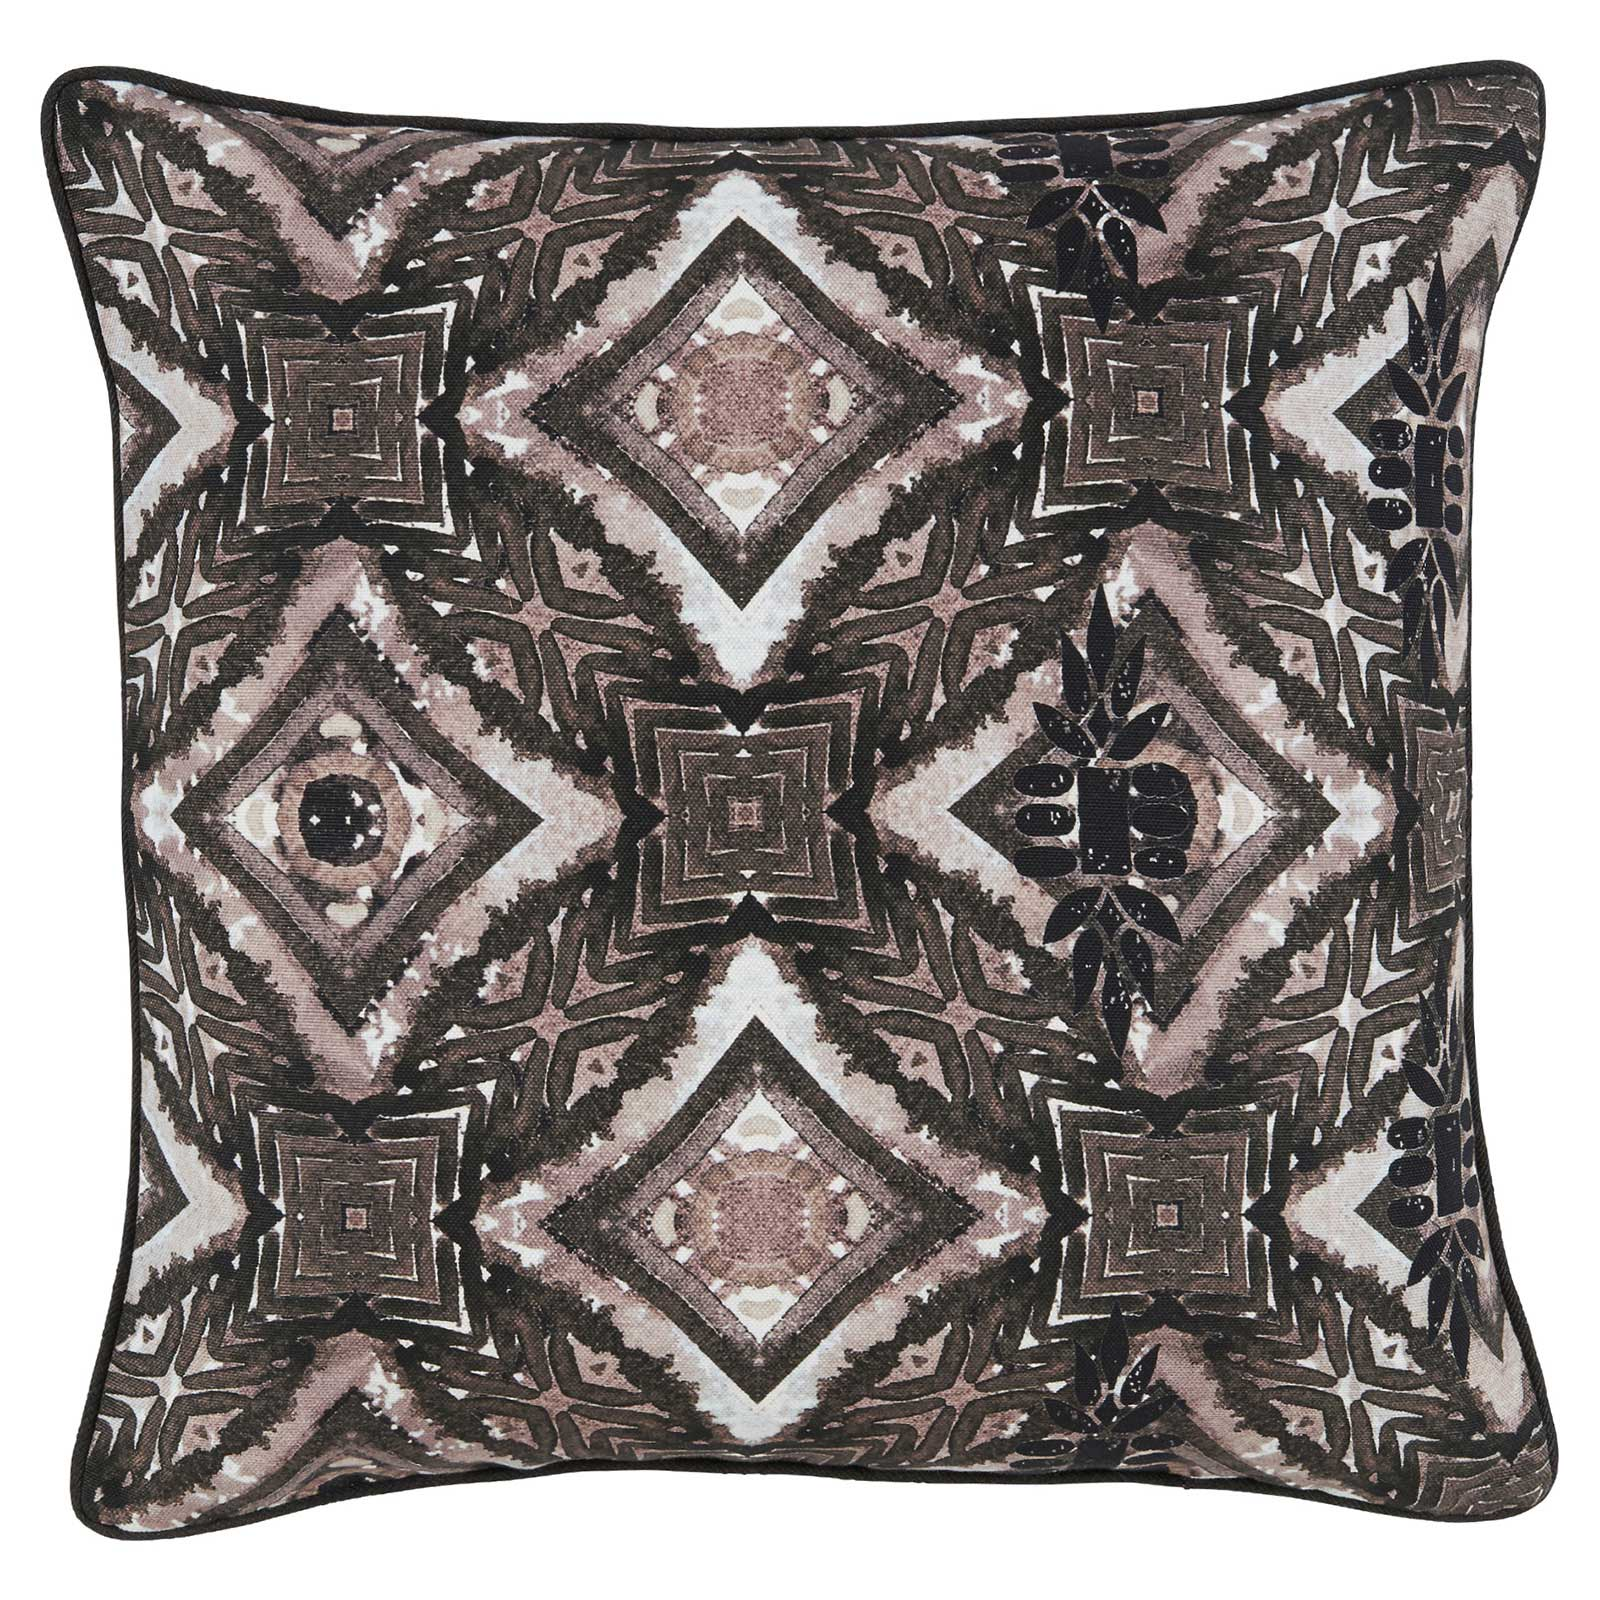 Bartle Modern Ink Blot Charcoal Patterned Pillow - 20x20